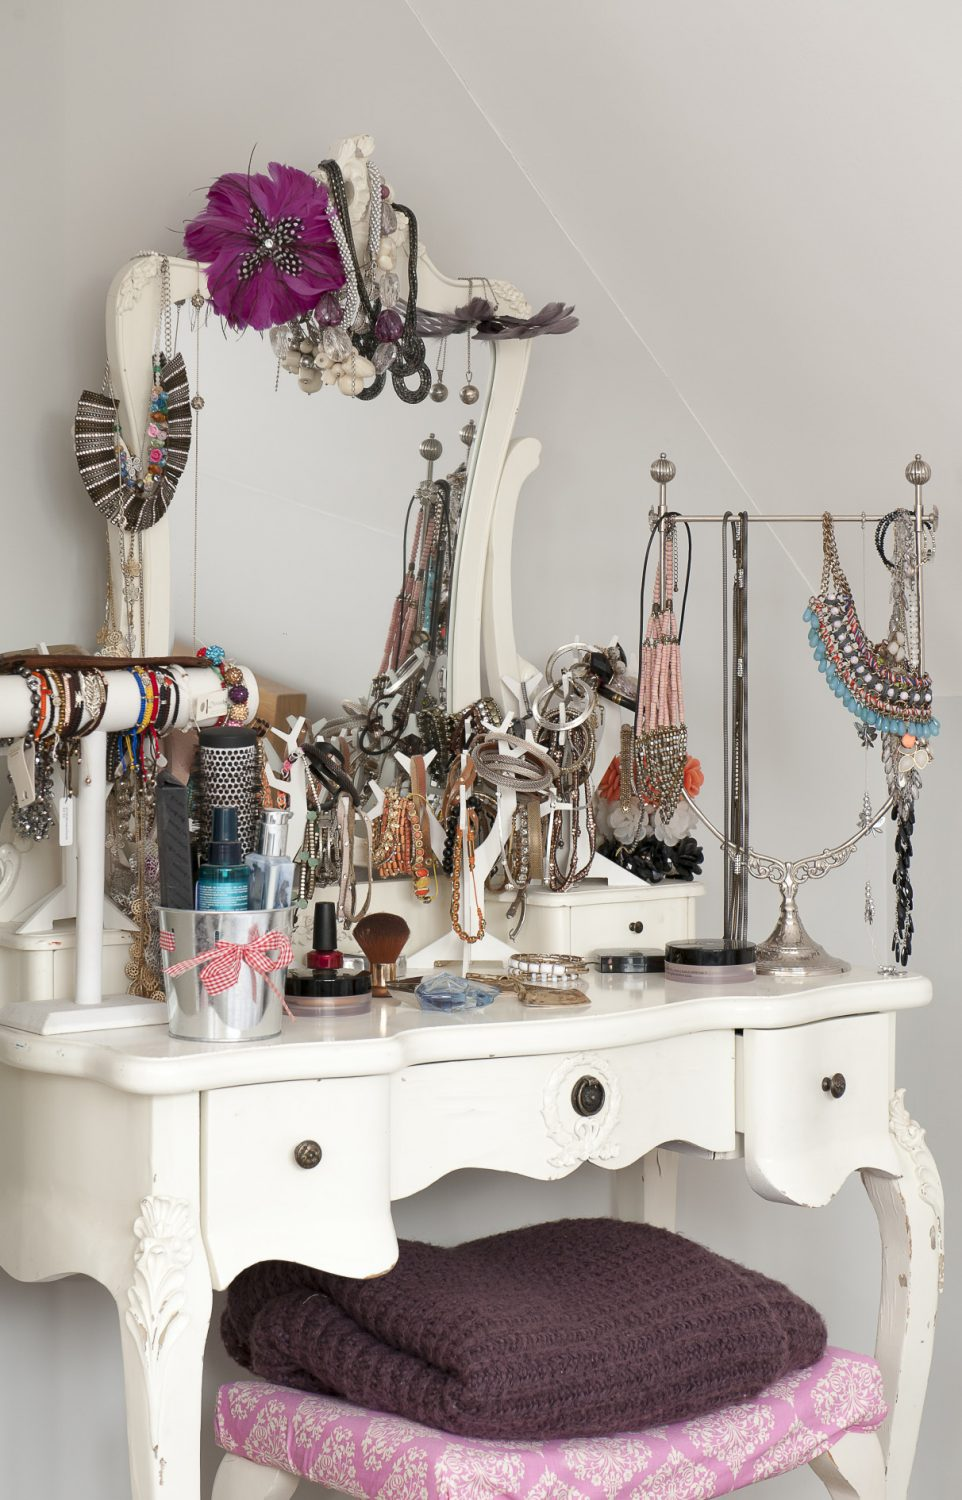 Sandra's dressing table in the guest bedroom